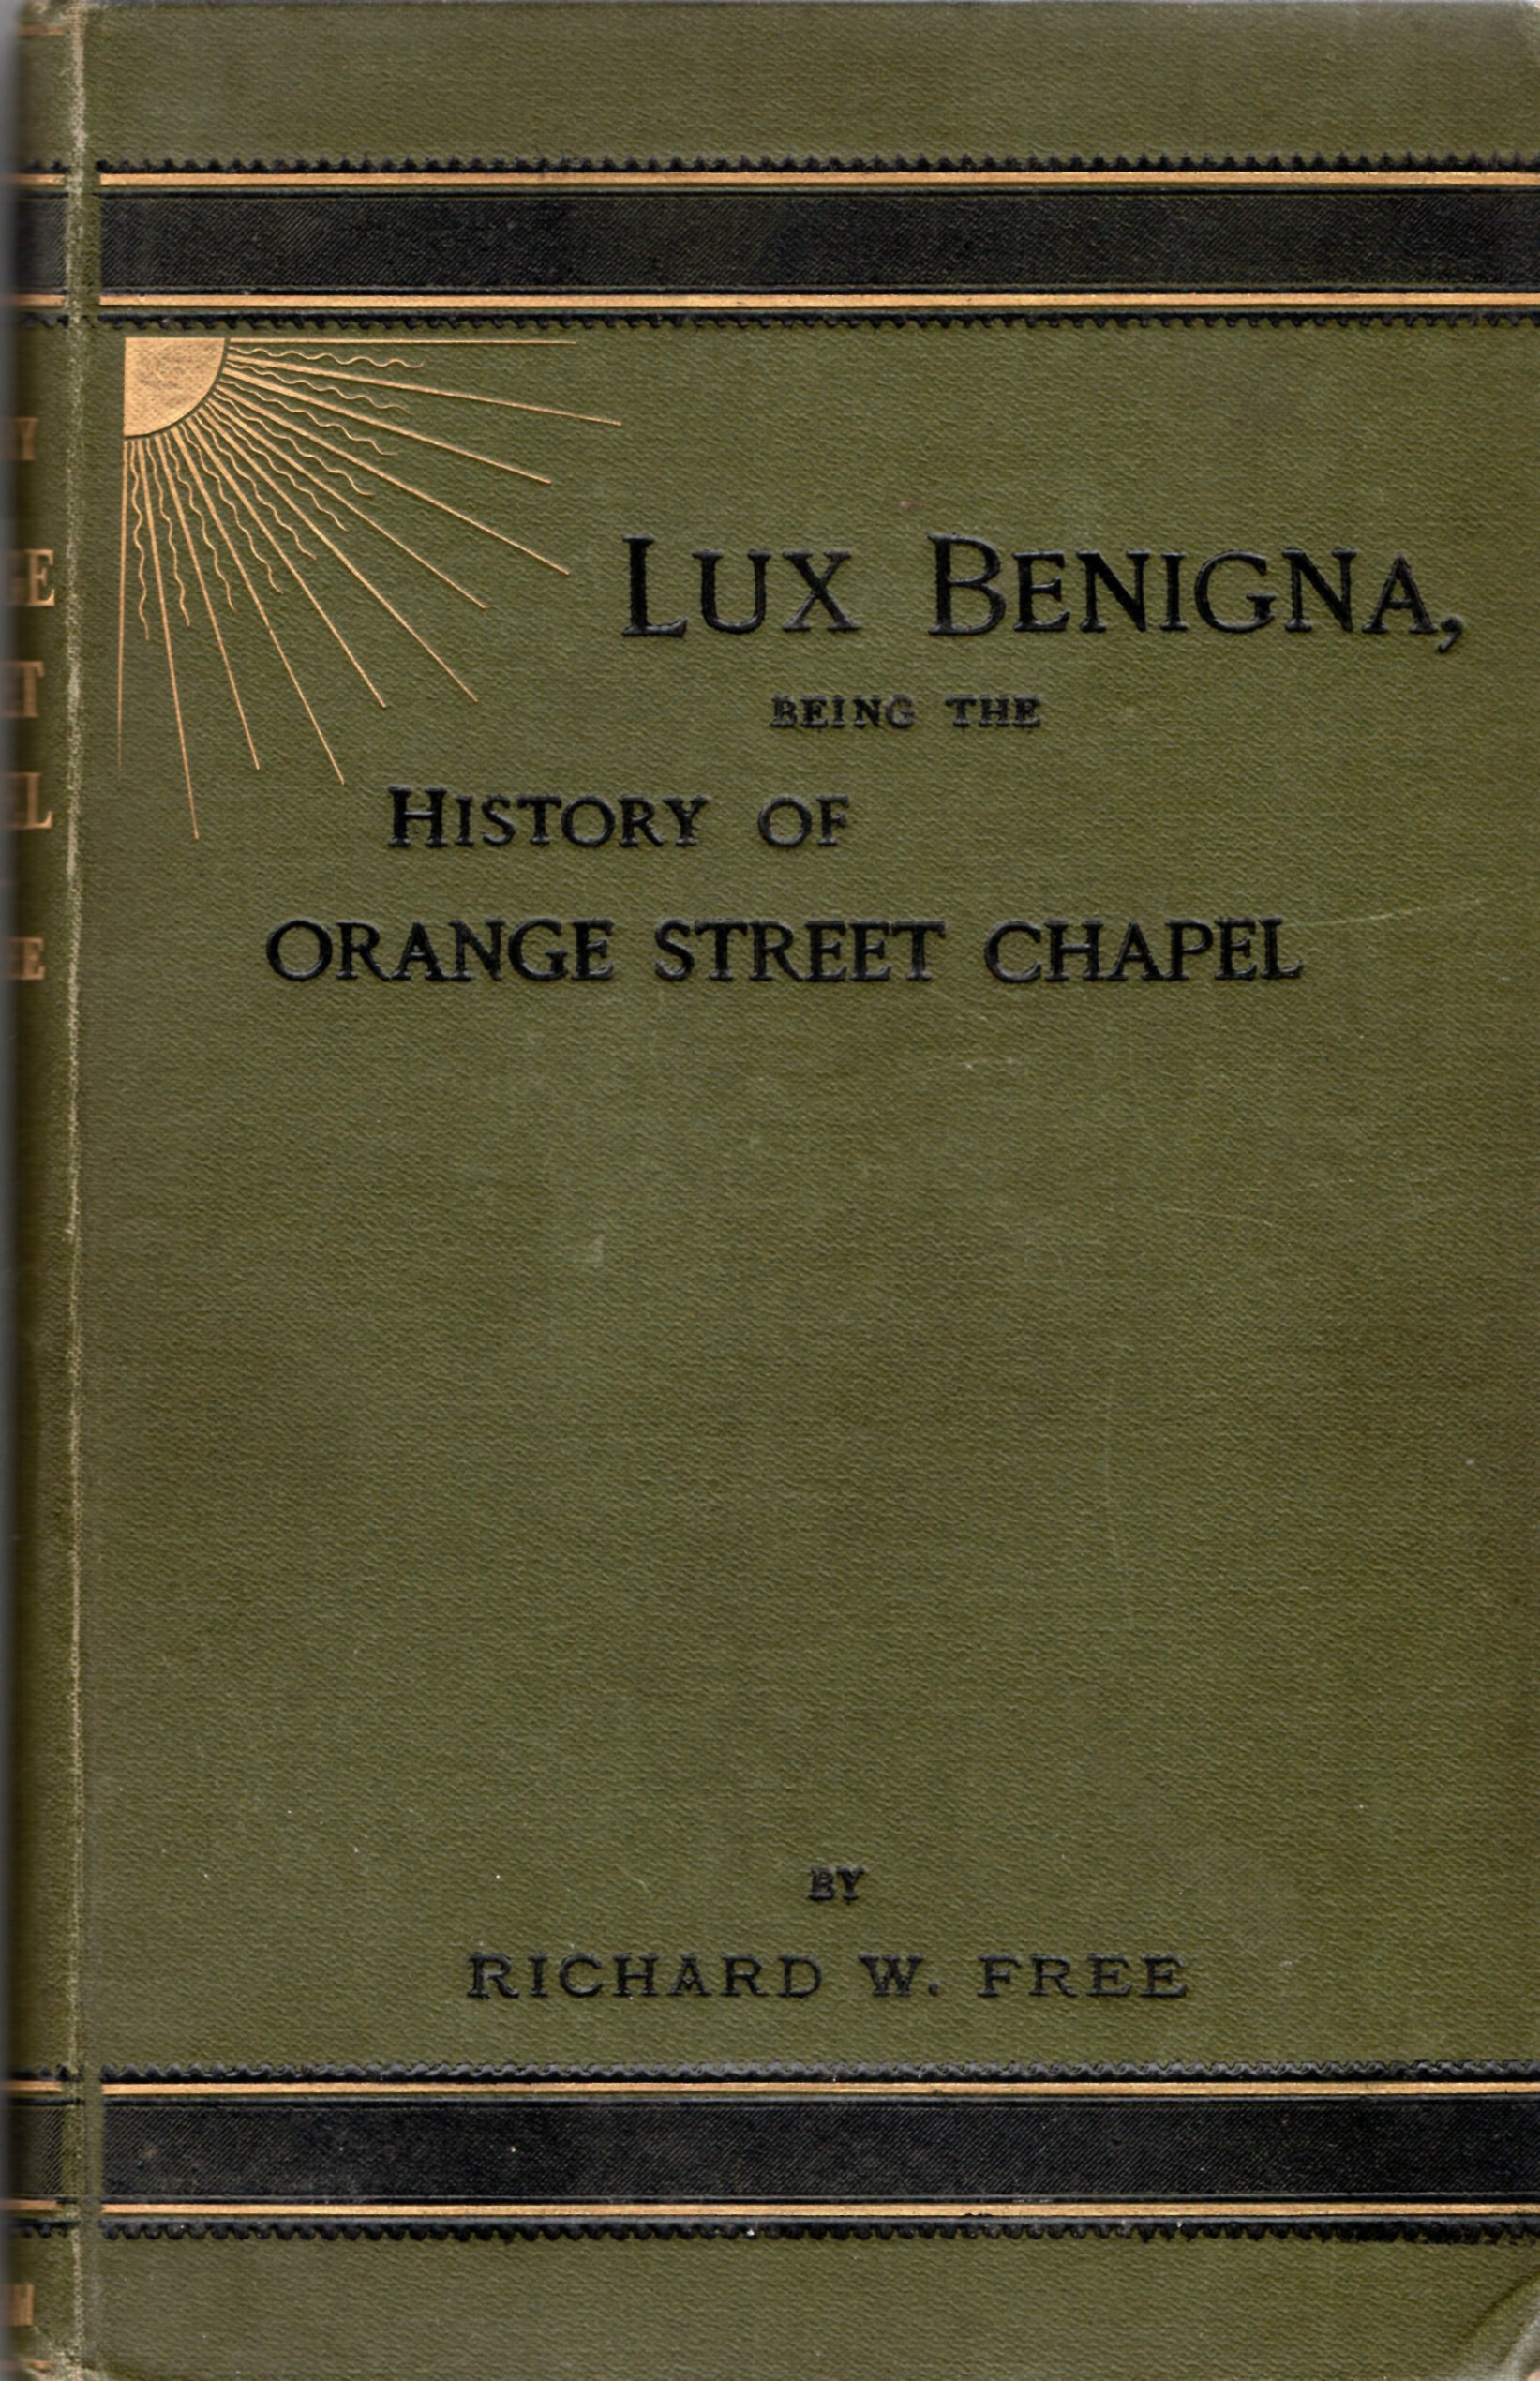 Image for Lux Benigna, Being the History of Orange Street Chapel.